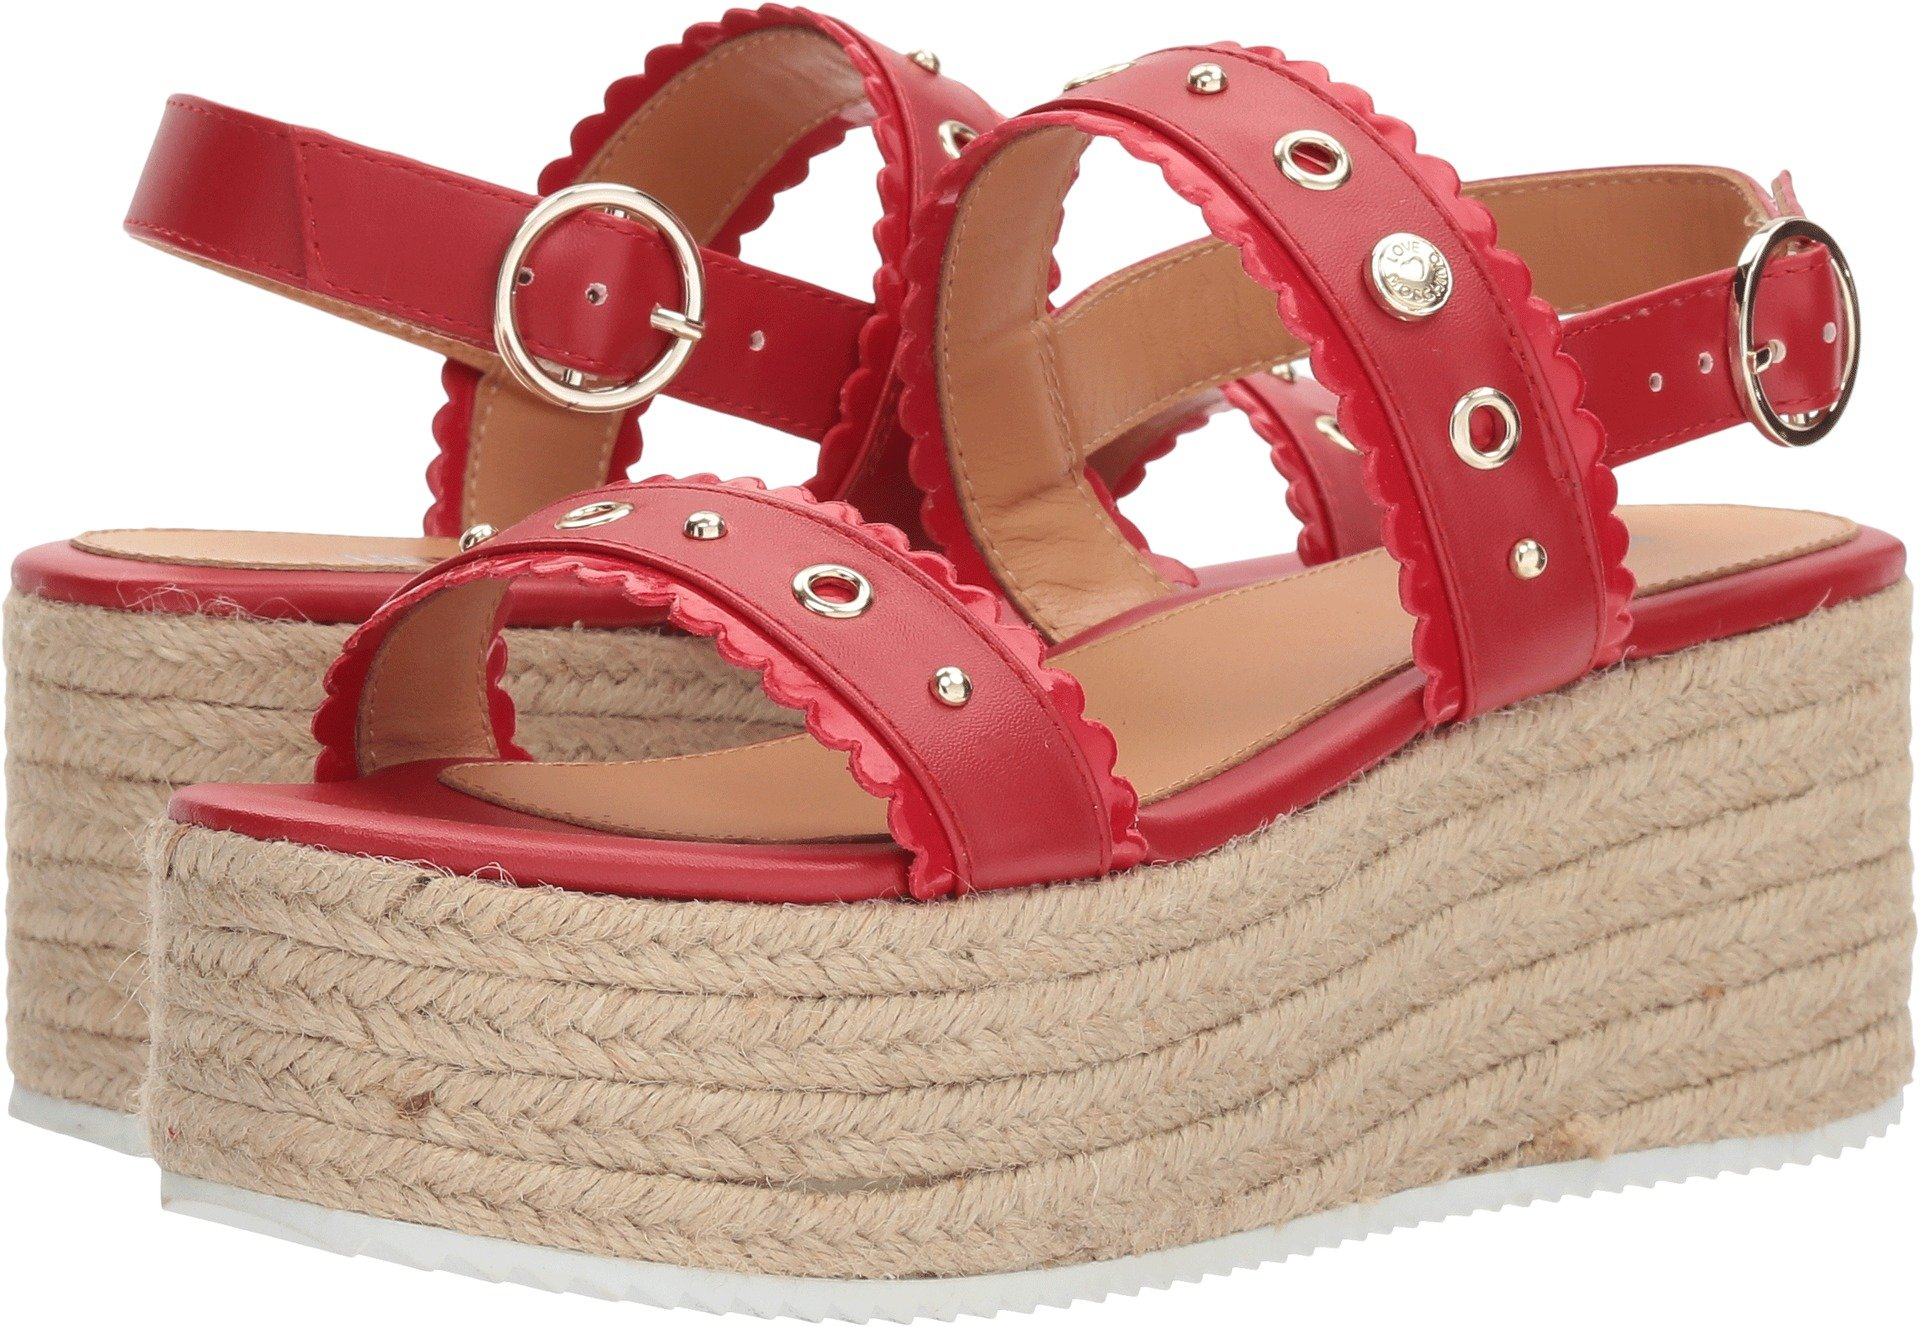 Love Moschino Women's Platform Sandal Red 39 M EU